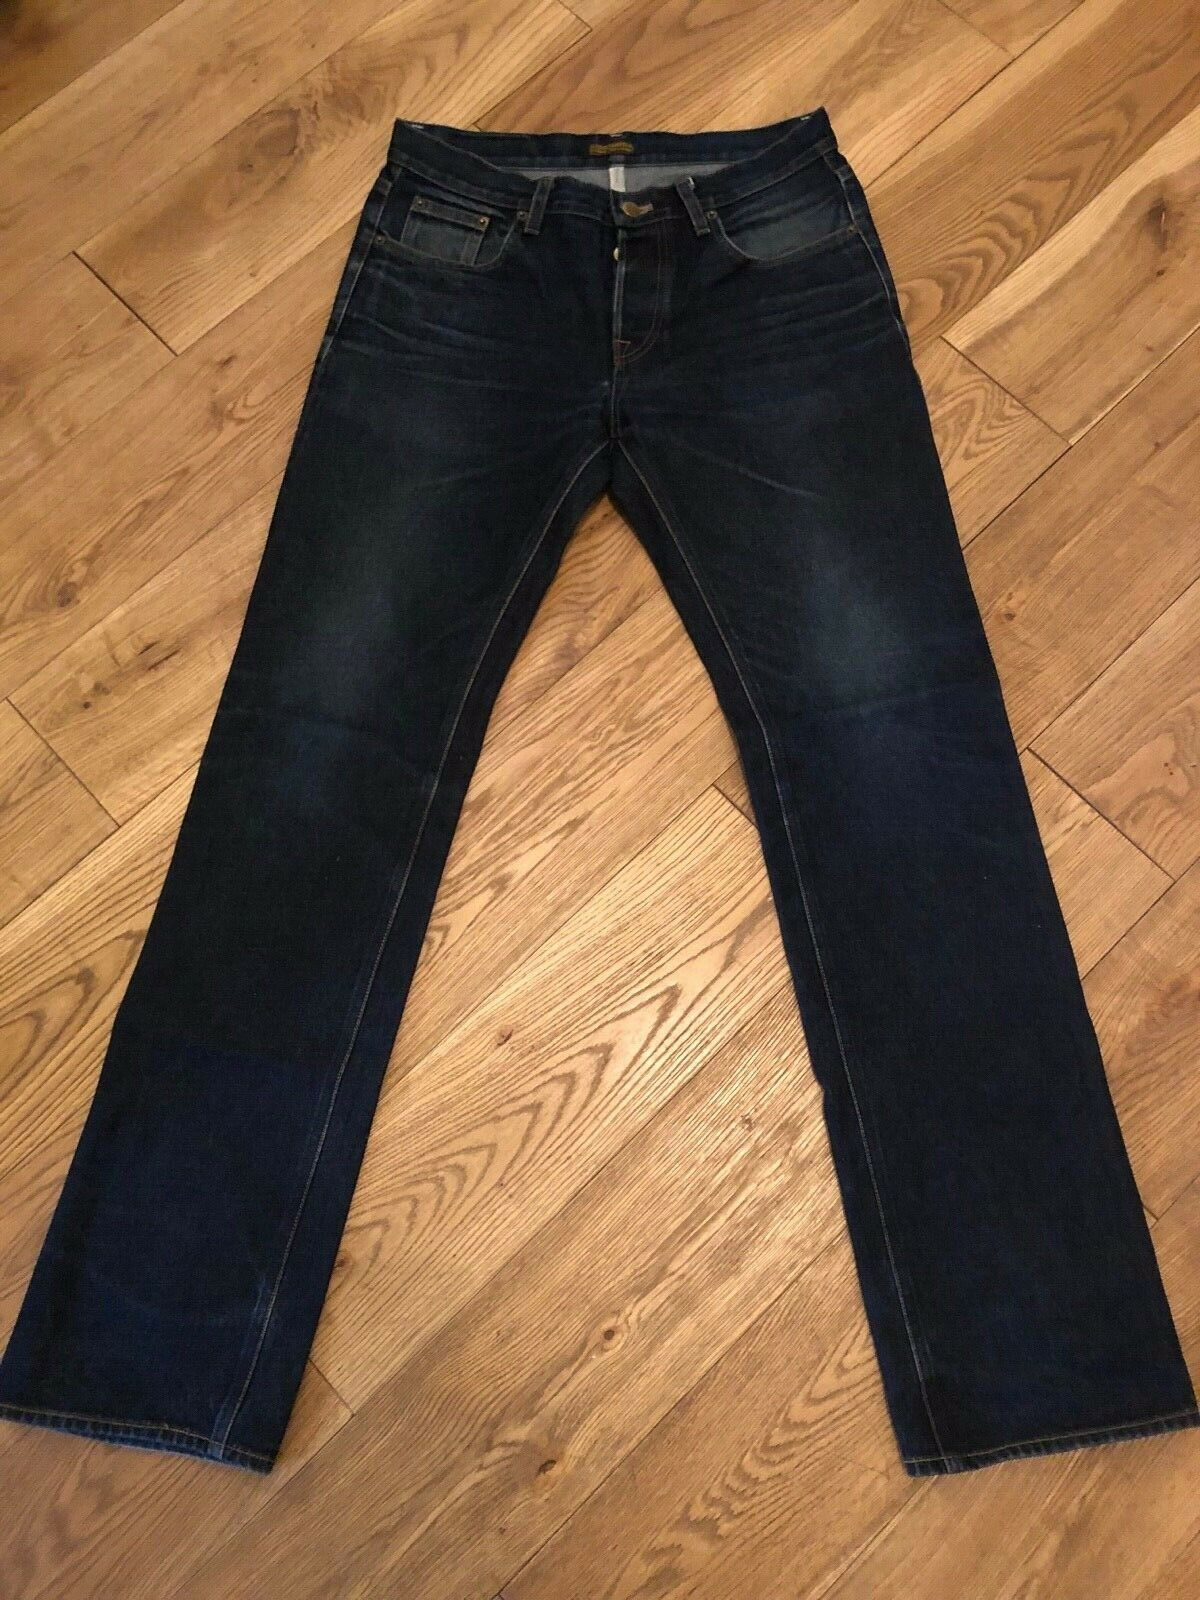 Ande Whall Grifter Denim Jeans Size 33 (84cm) Indigo 2007, One of 14 Pairs, RARE